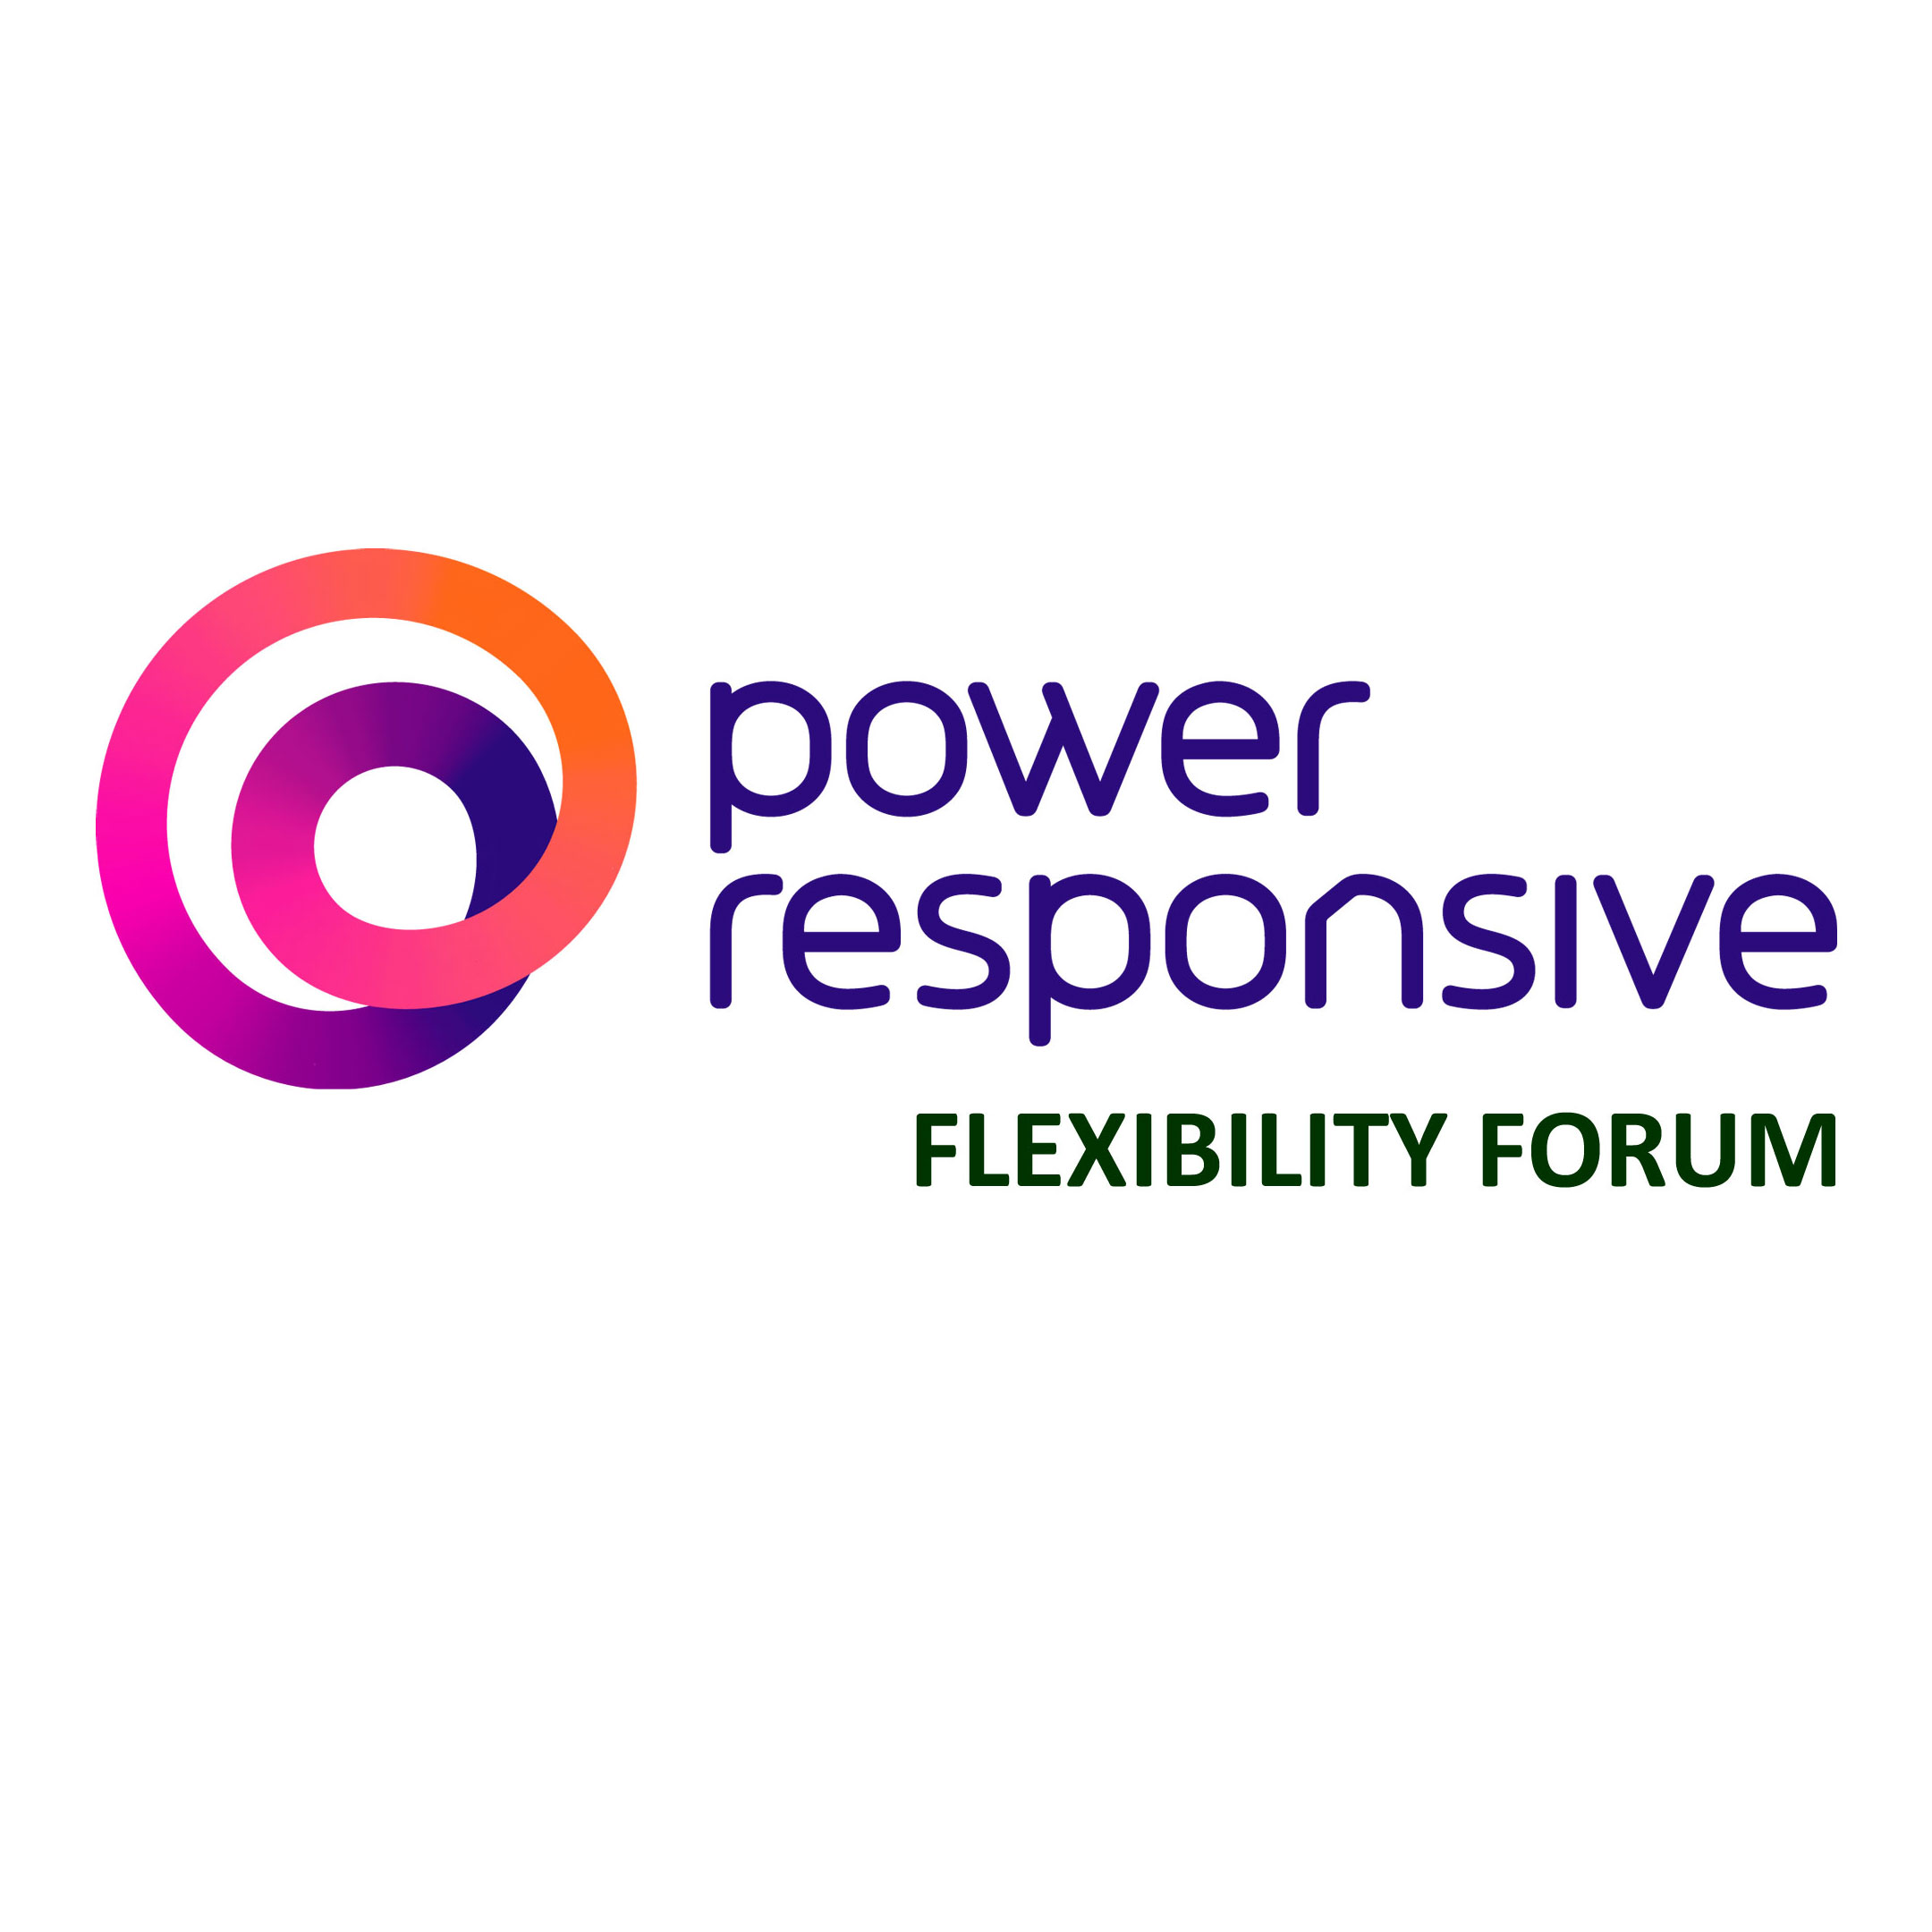 Power Responsive Flexibility Forum - Power Responsive